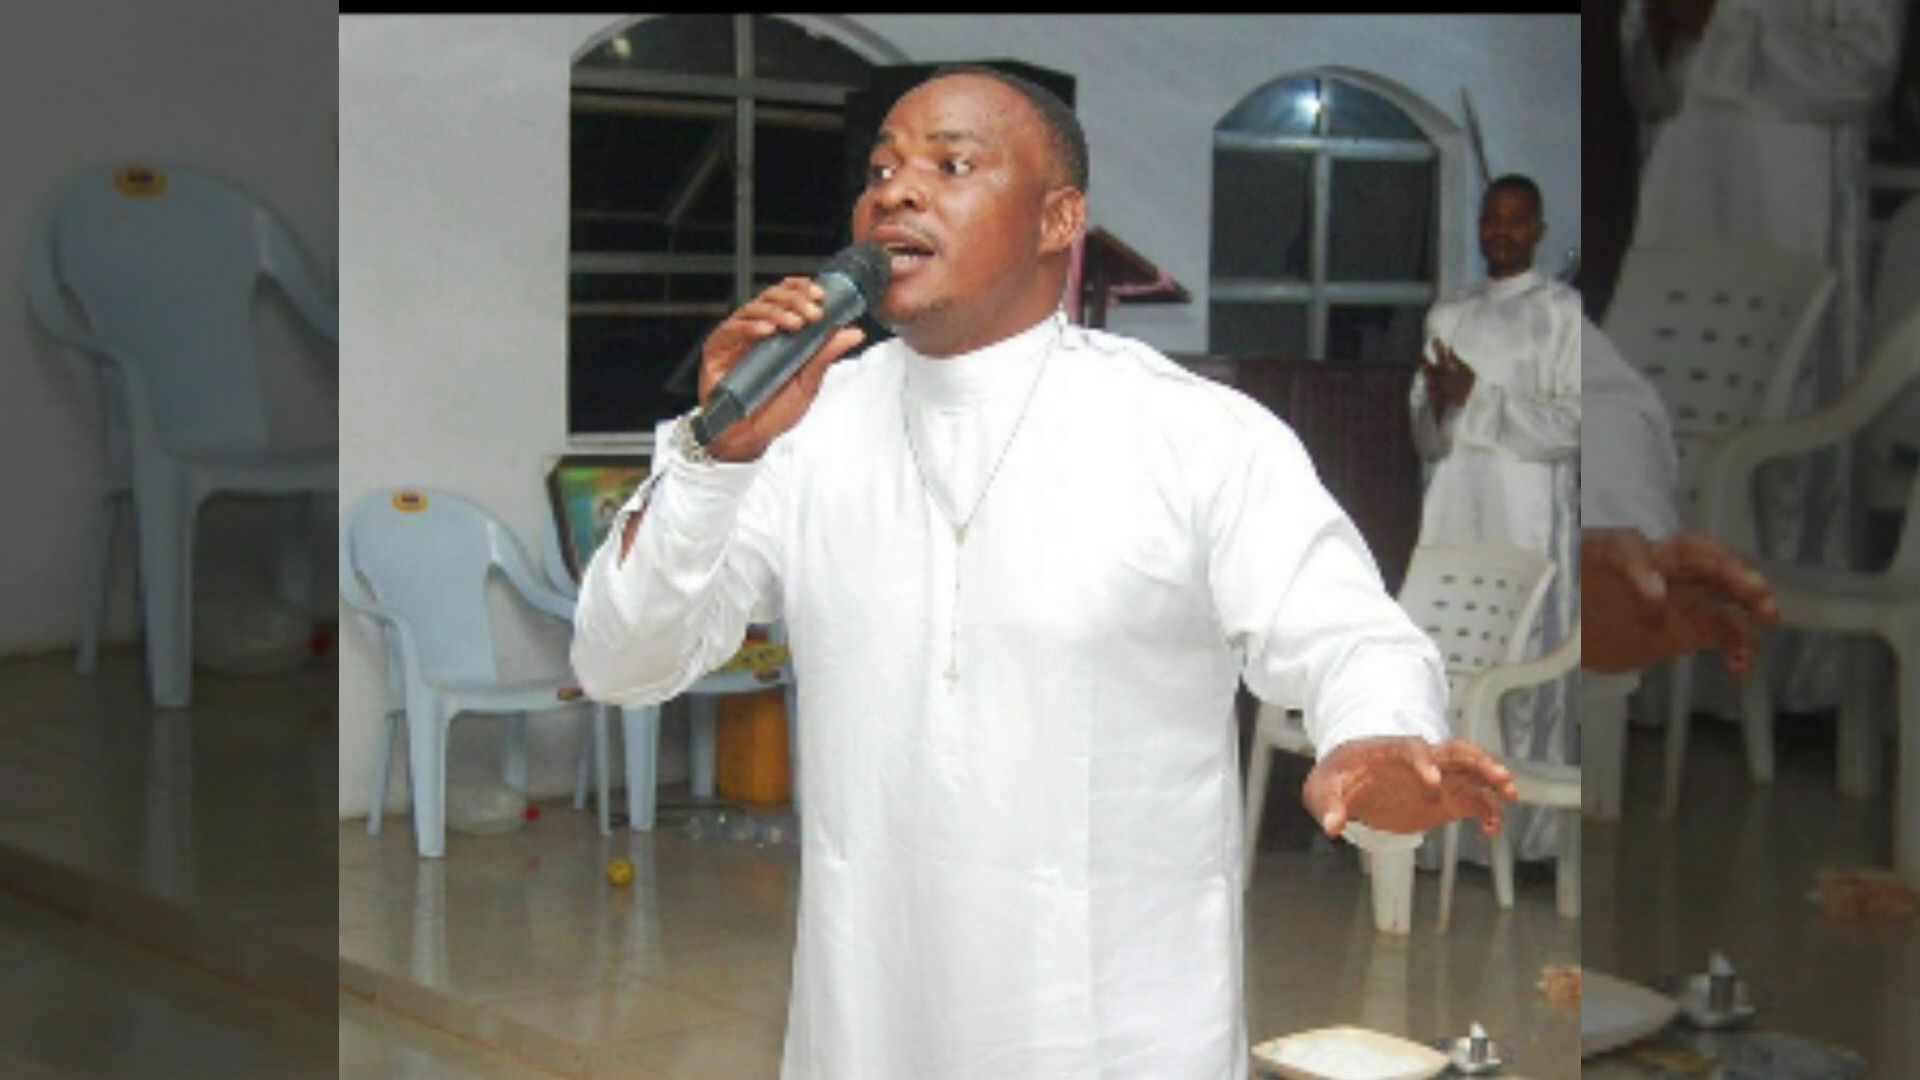 Enemies against existence of Celestial church behind my ordeal, says Pastor arrested by Task force